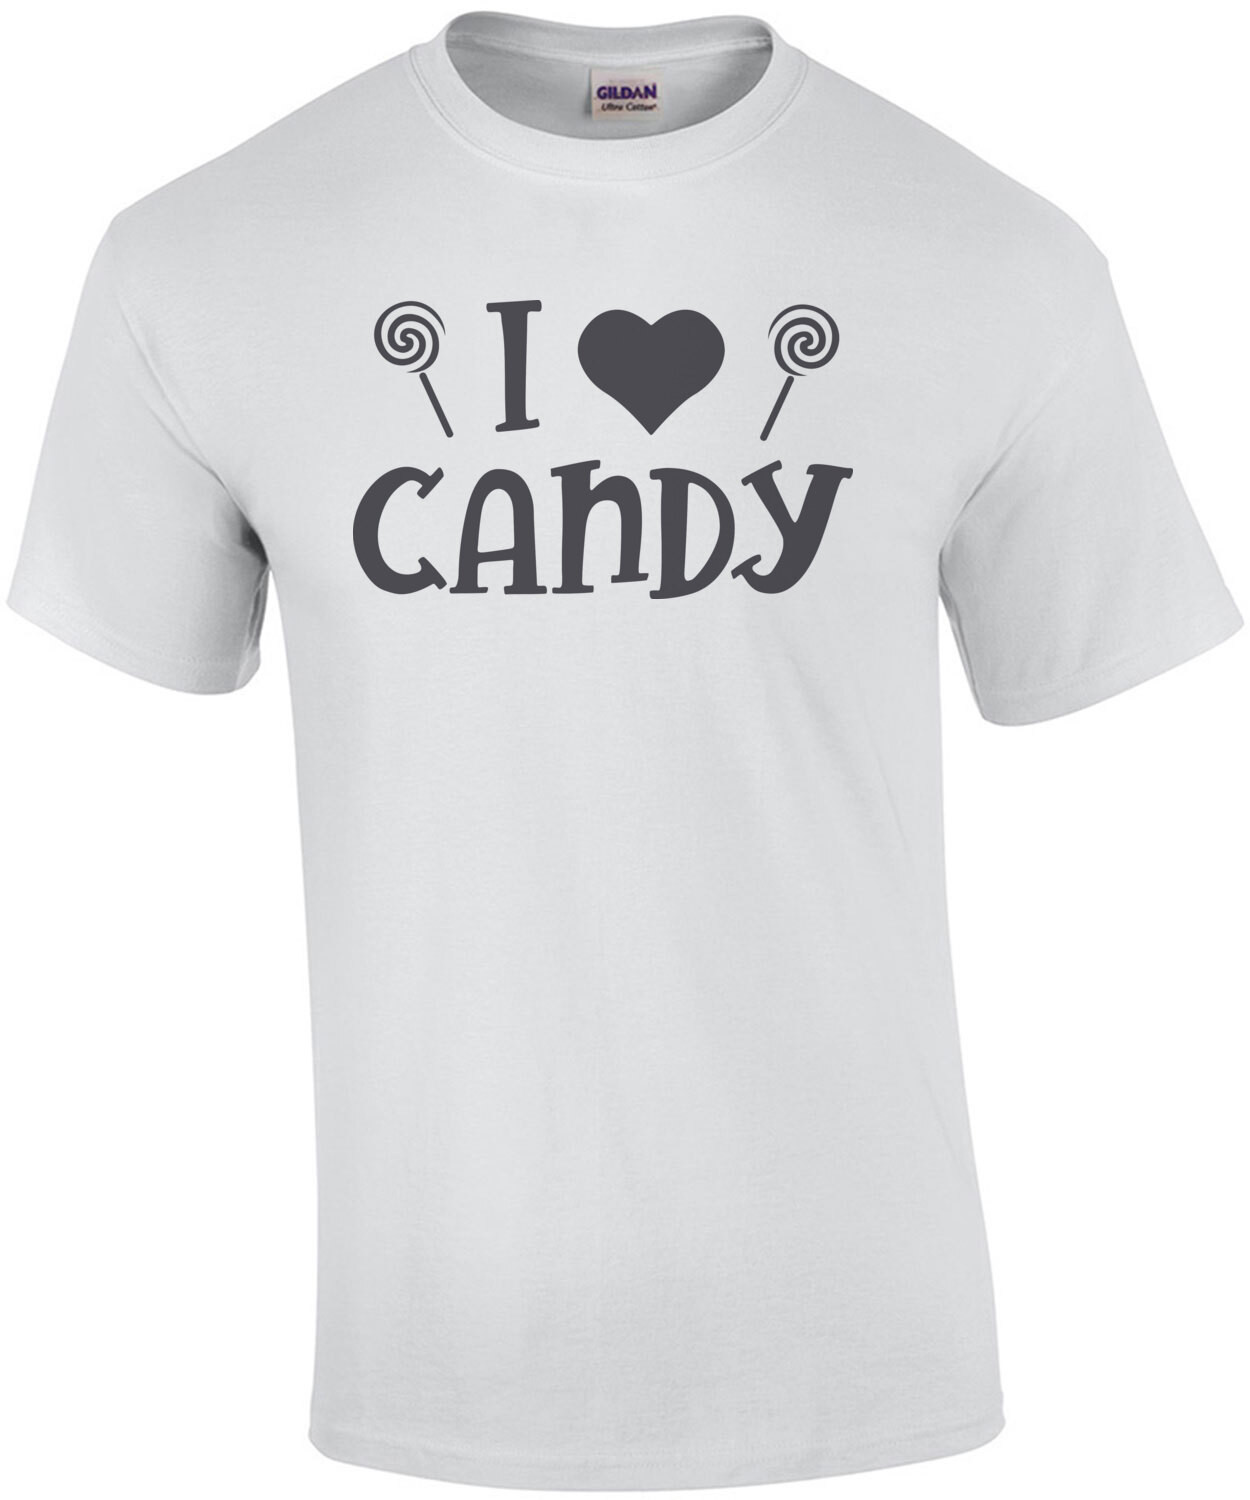 I Love Candy - Trick or Treating Shirt